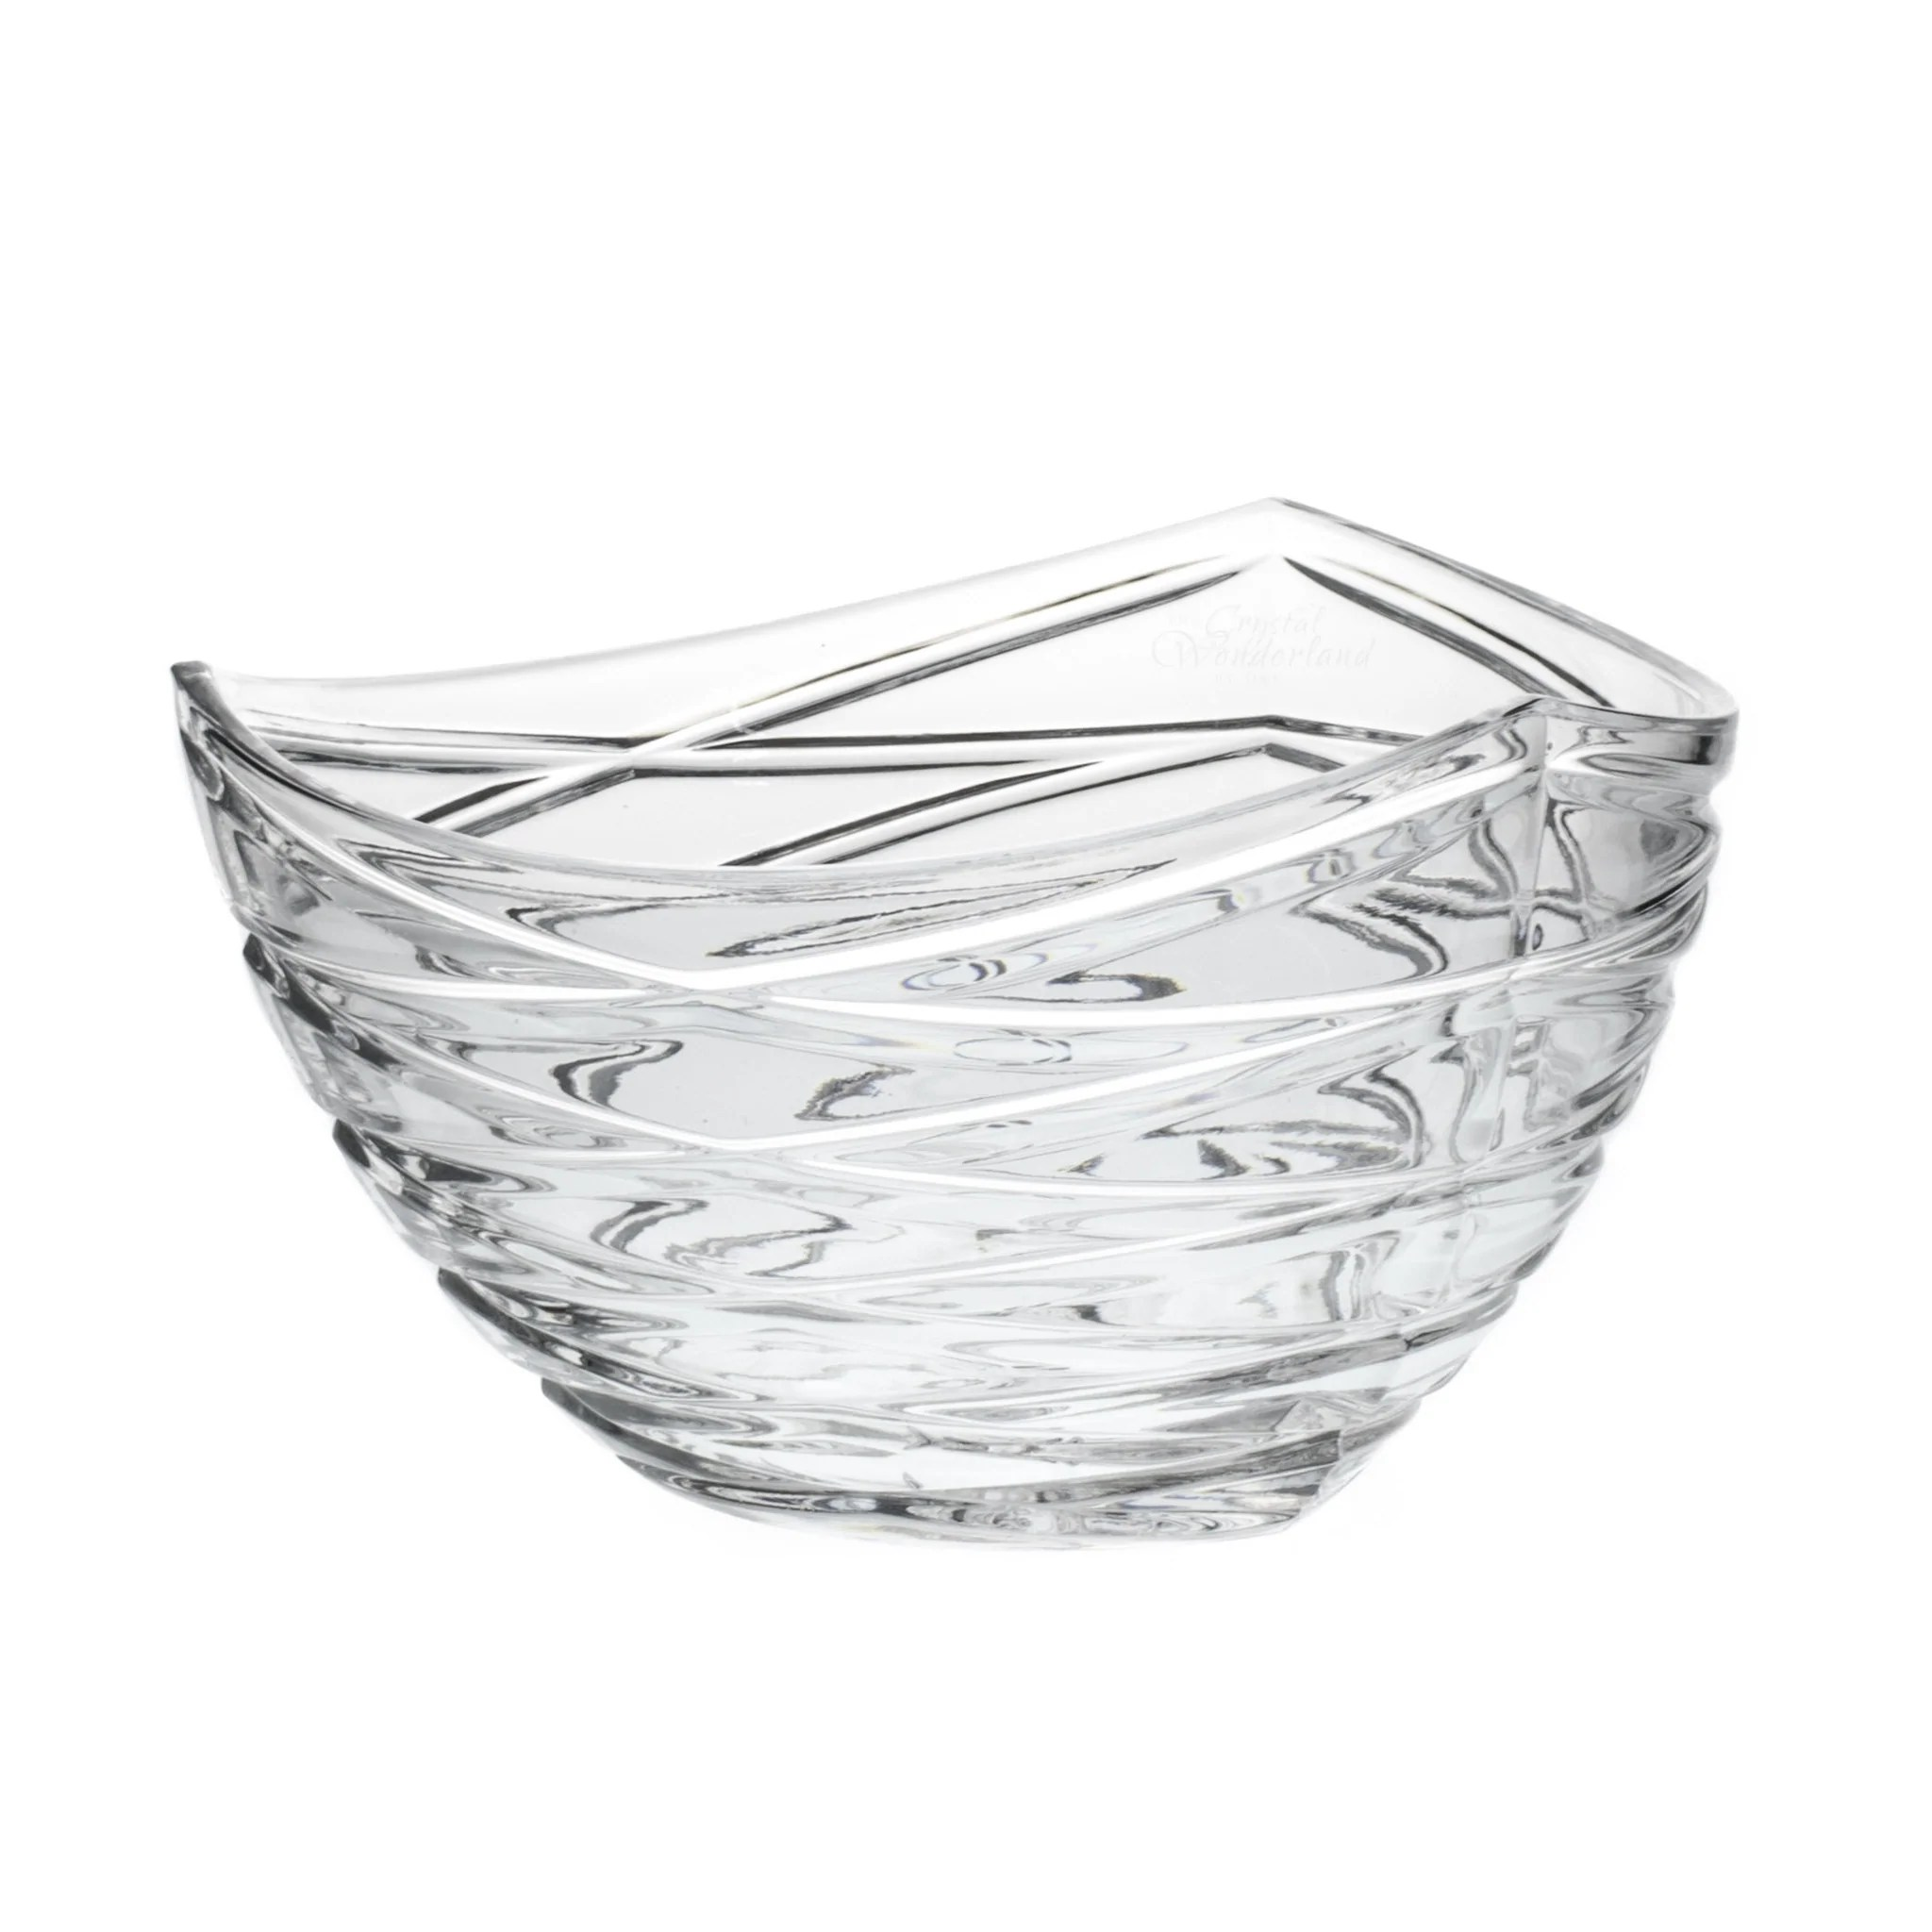 Bowl For Fruit Crystal Fruit Bowl